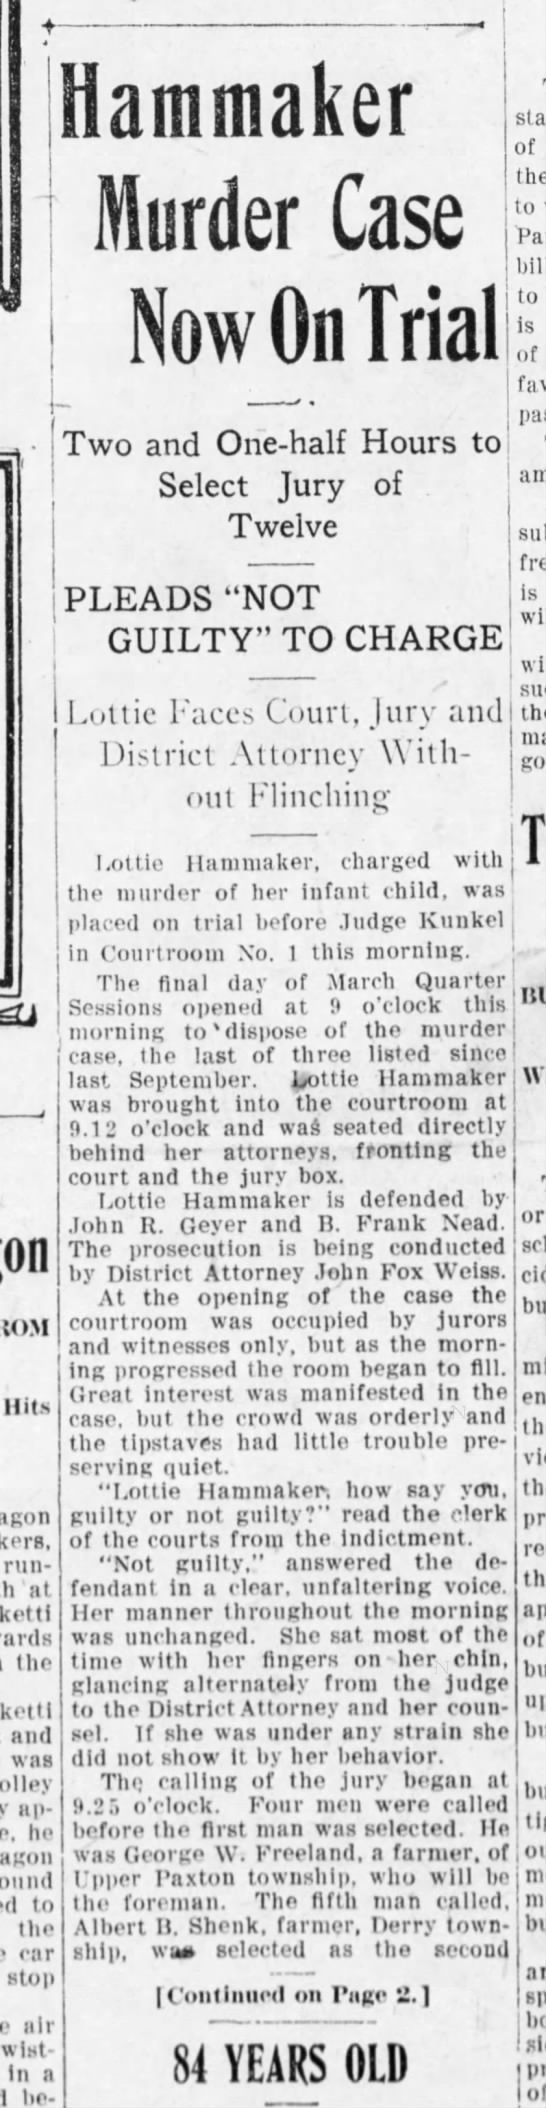 1909 lottie hammaker trial killing infant pg 1 - f was trolley ap - he wagon KOM Hits wagon...